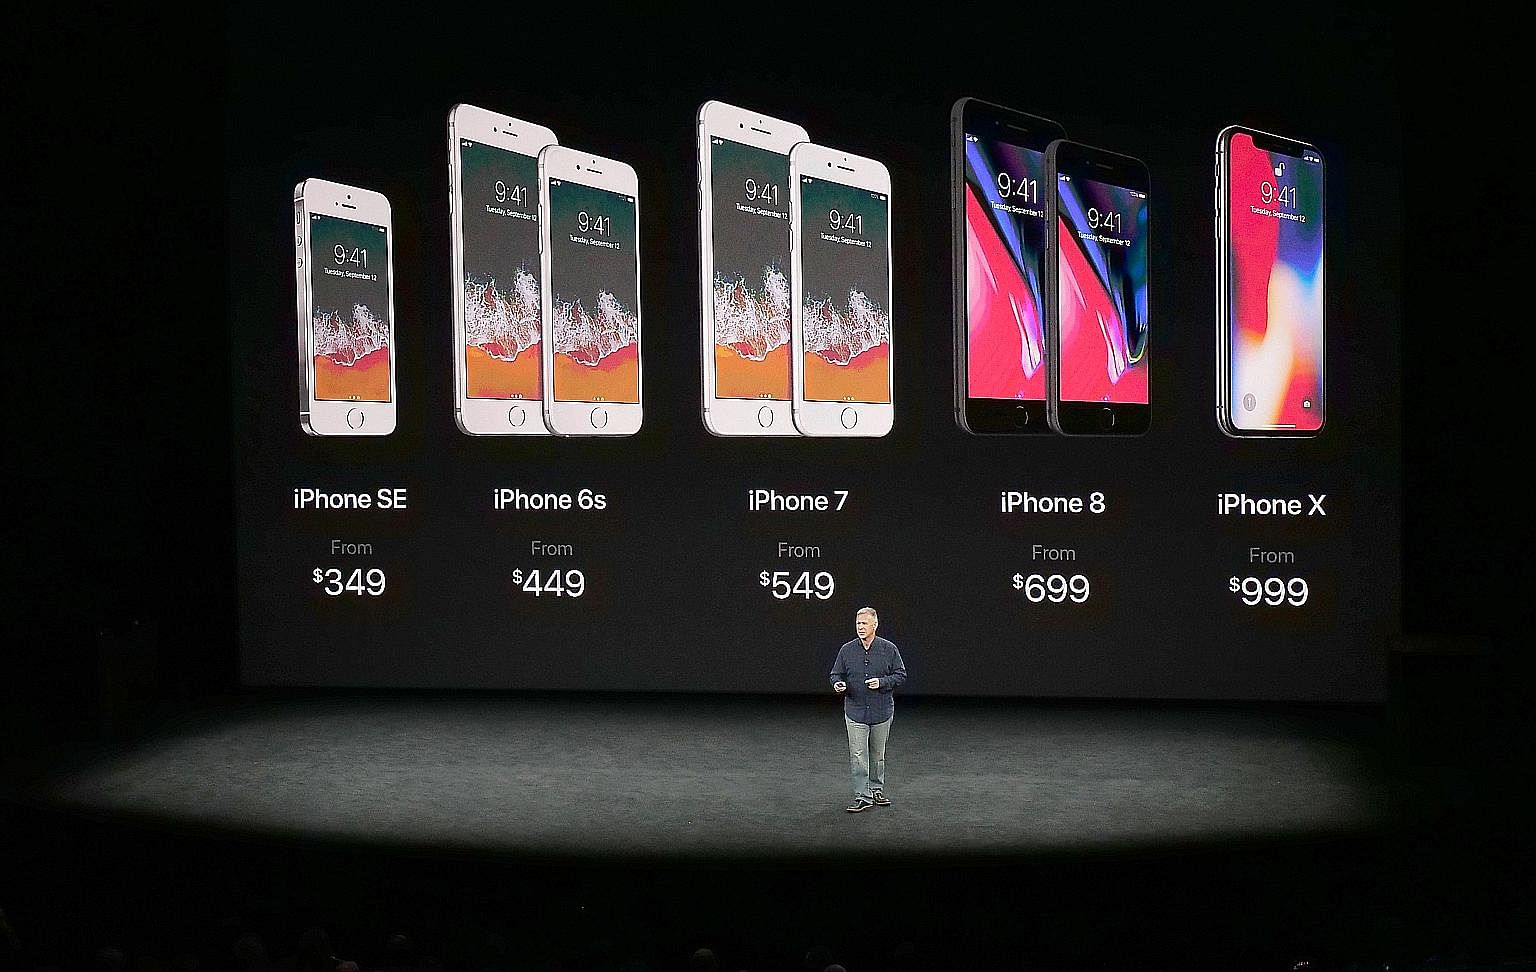 Apple marketing chief Phil Schiller showing the current line-up of iPhones during the special event held at Steve Jobs Theater in Cupertino earlier this month.